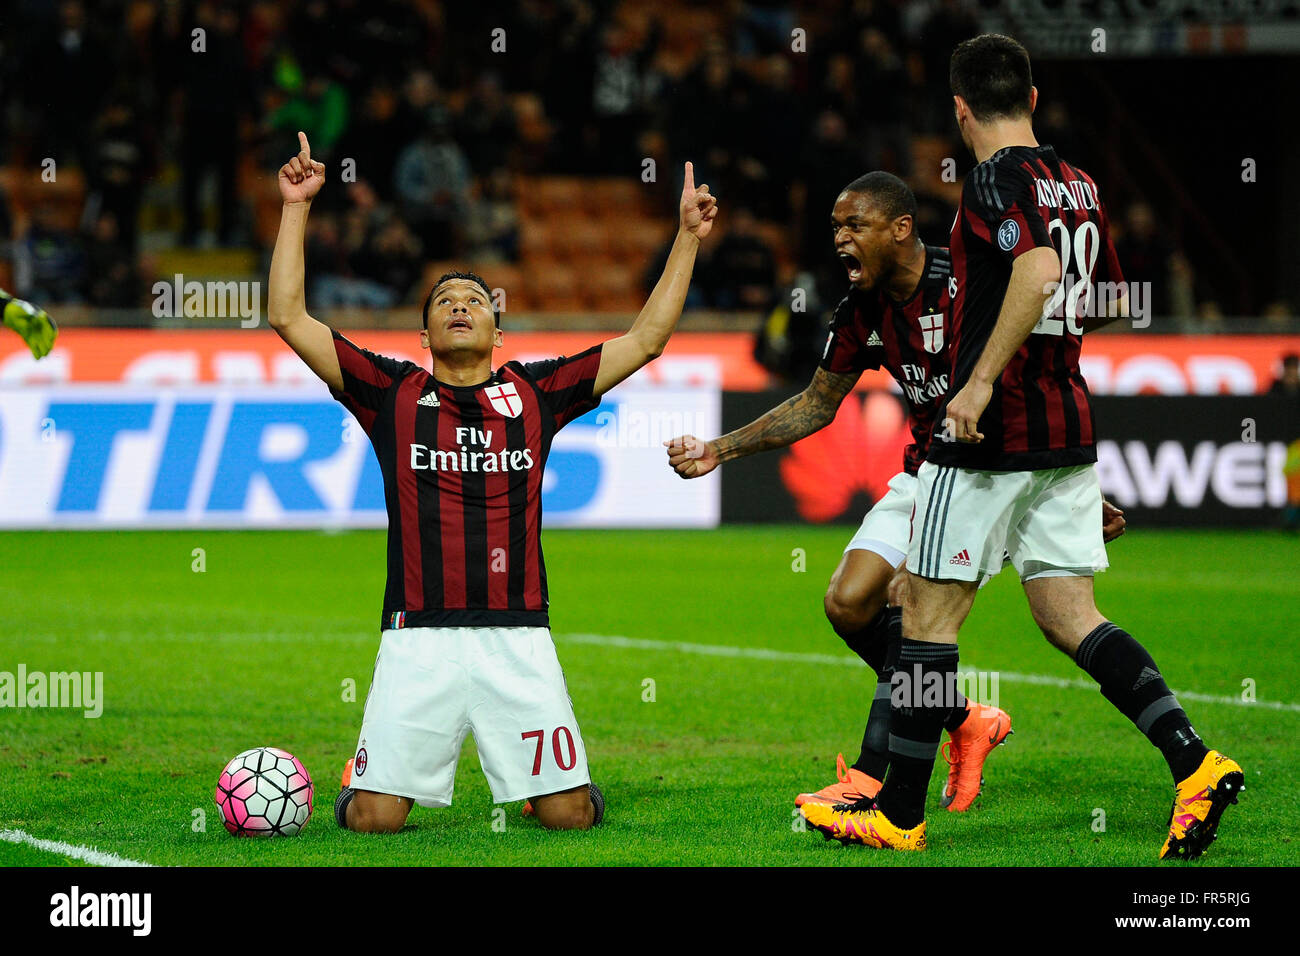 Carlos Bacca of Milan celebrates scoring draw 1-1 with Luiz Adriano and Andrea Bonaventura  Milano 20-03-2016 Stadio - Stock Image